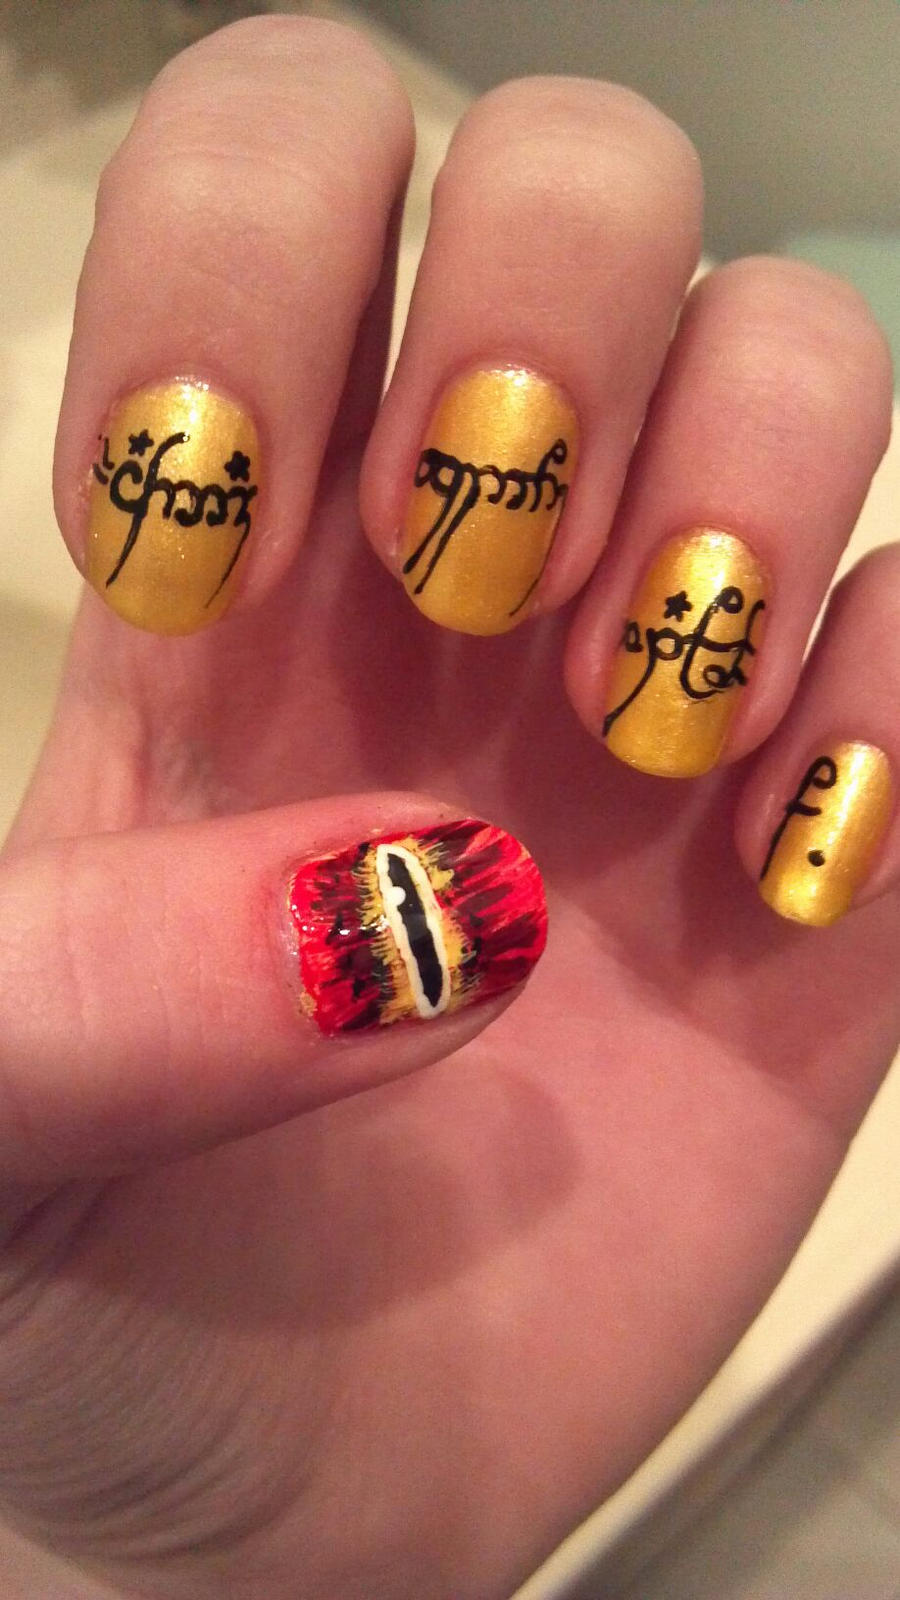 Lotr nail art nail review lord of the rings nail art by dyingxalicex prinsesfo Images